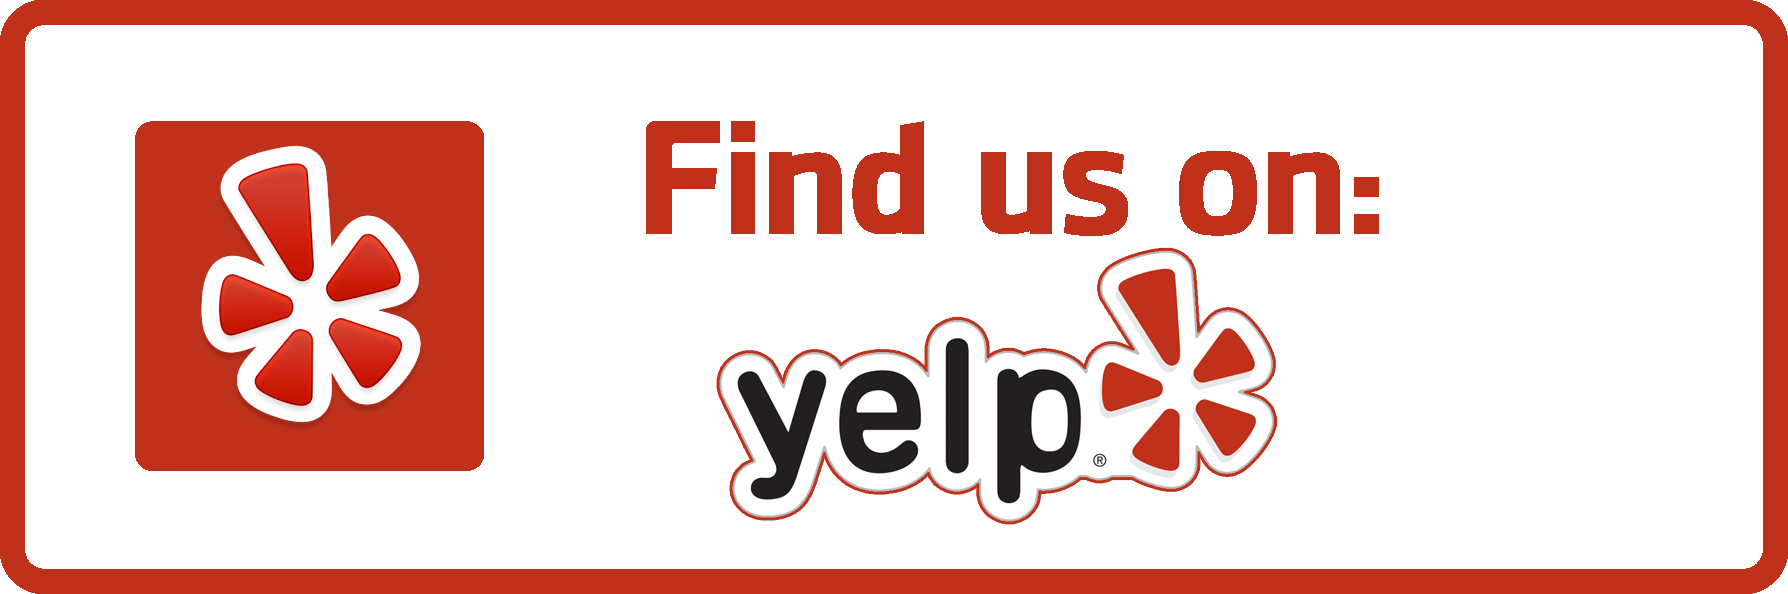 Find us on yelp png. Leave a review specialty